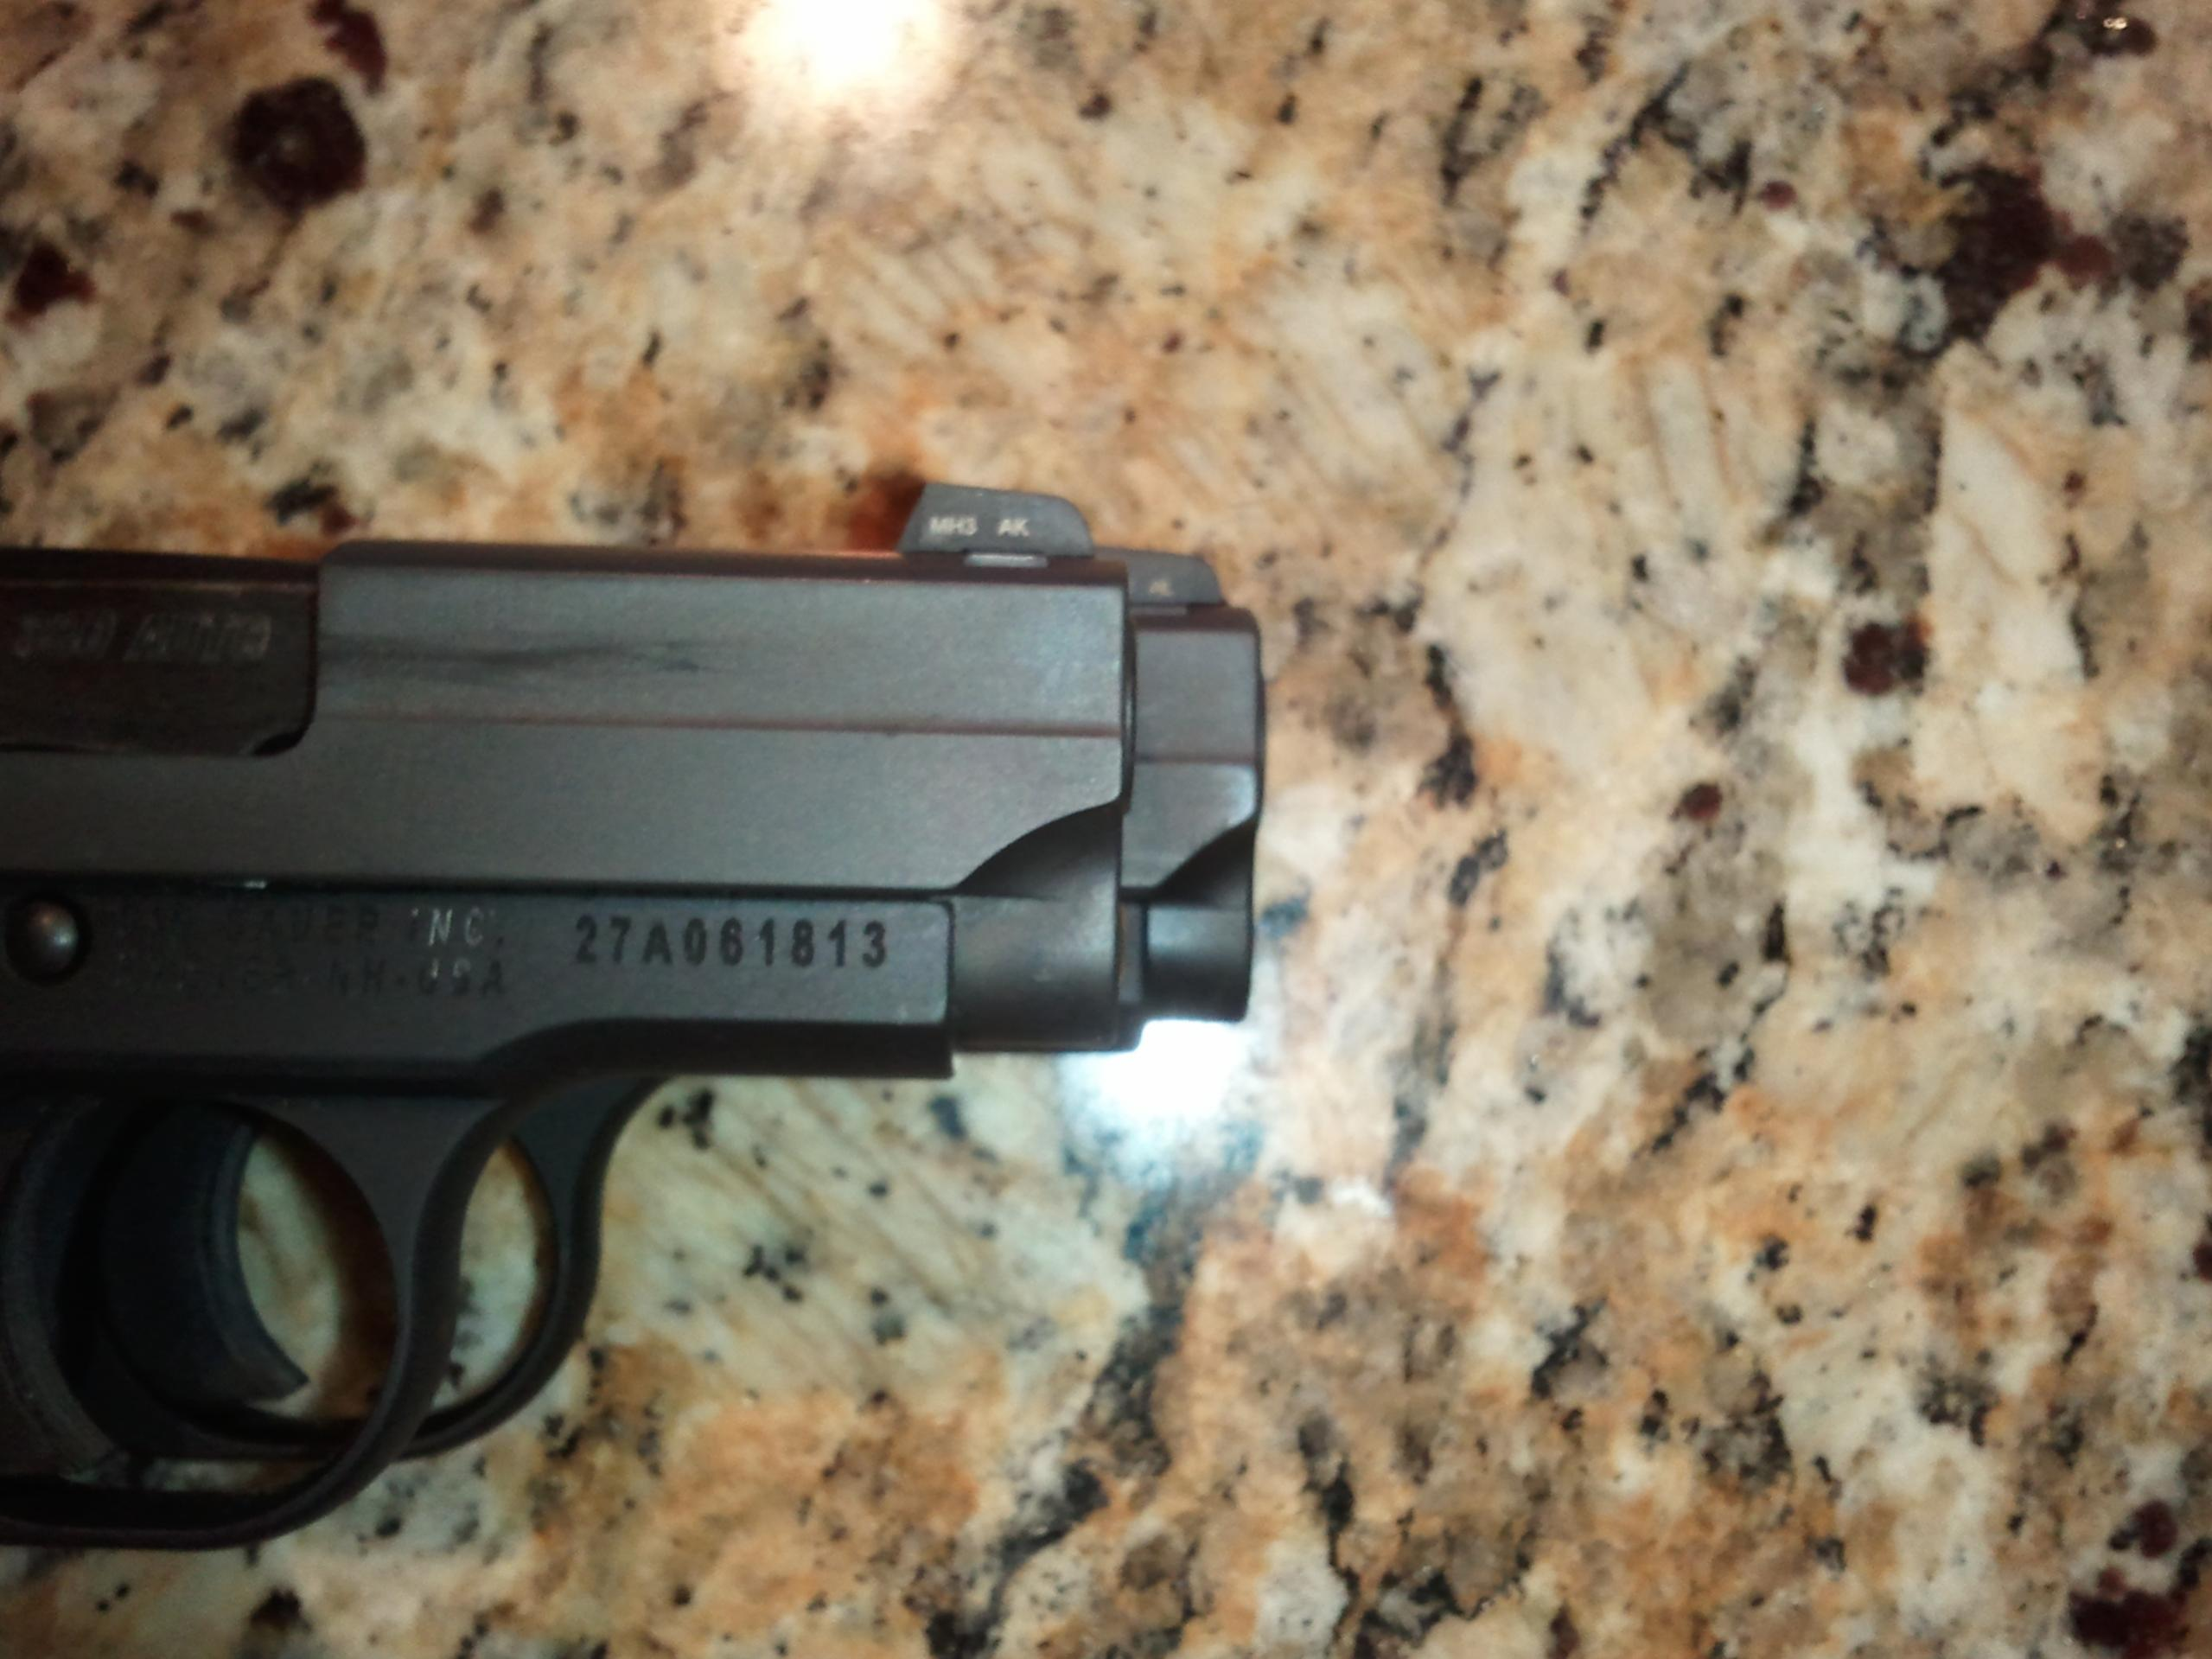 Just picked up my new Sig p938 Nightmare edition-2012-05-24-19.36.45.jpg